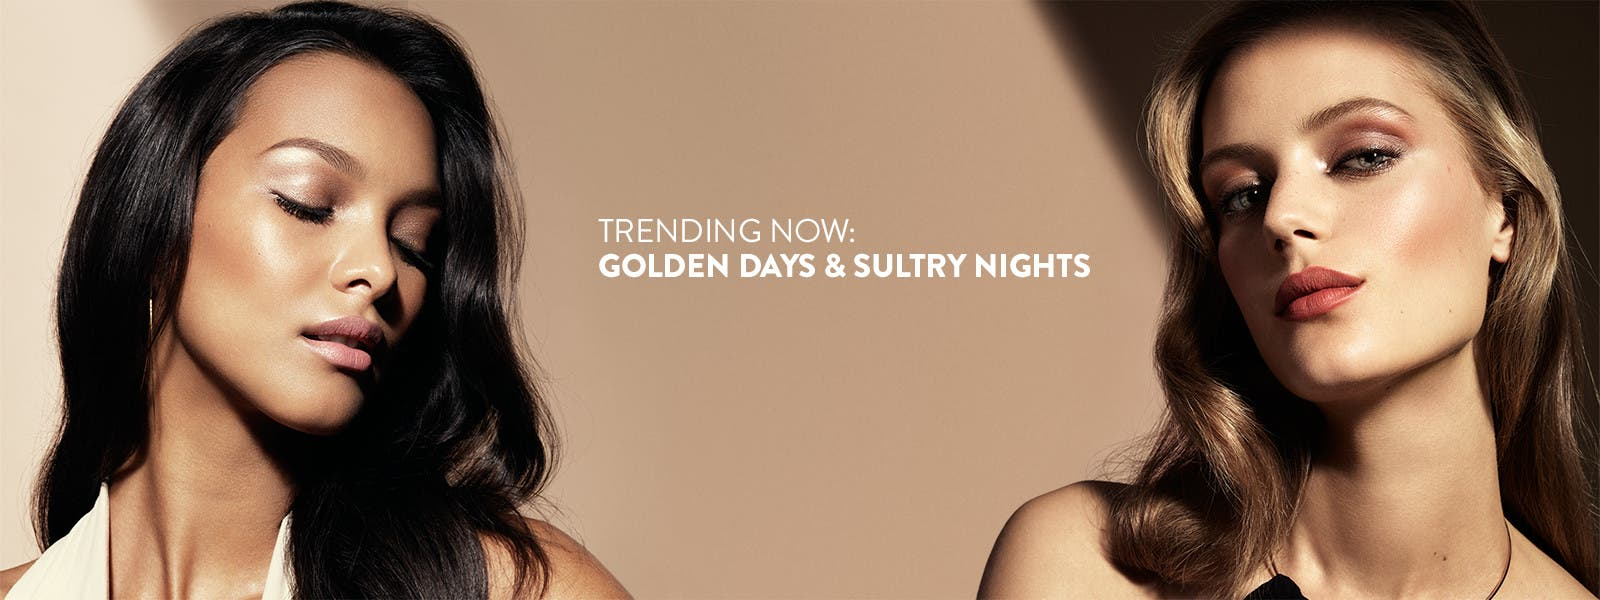 Trending now: golden days and sultry nights.